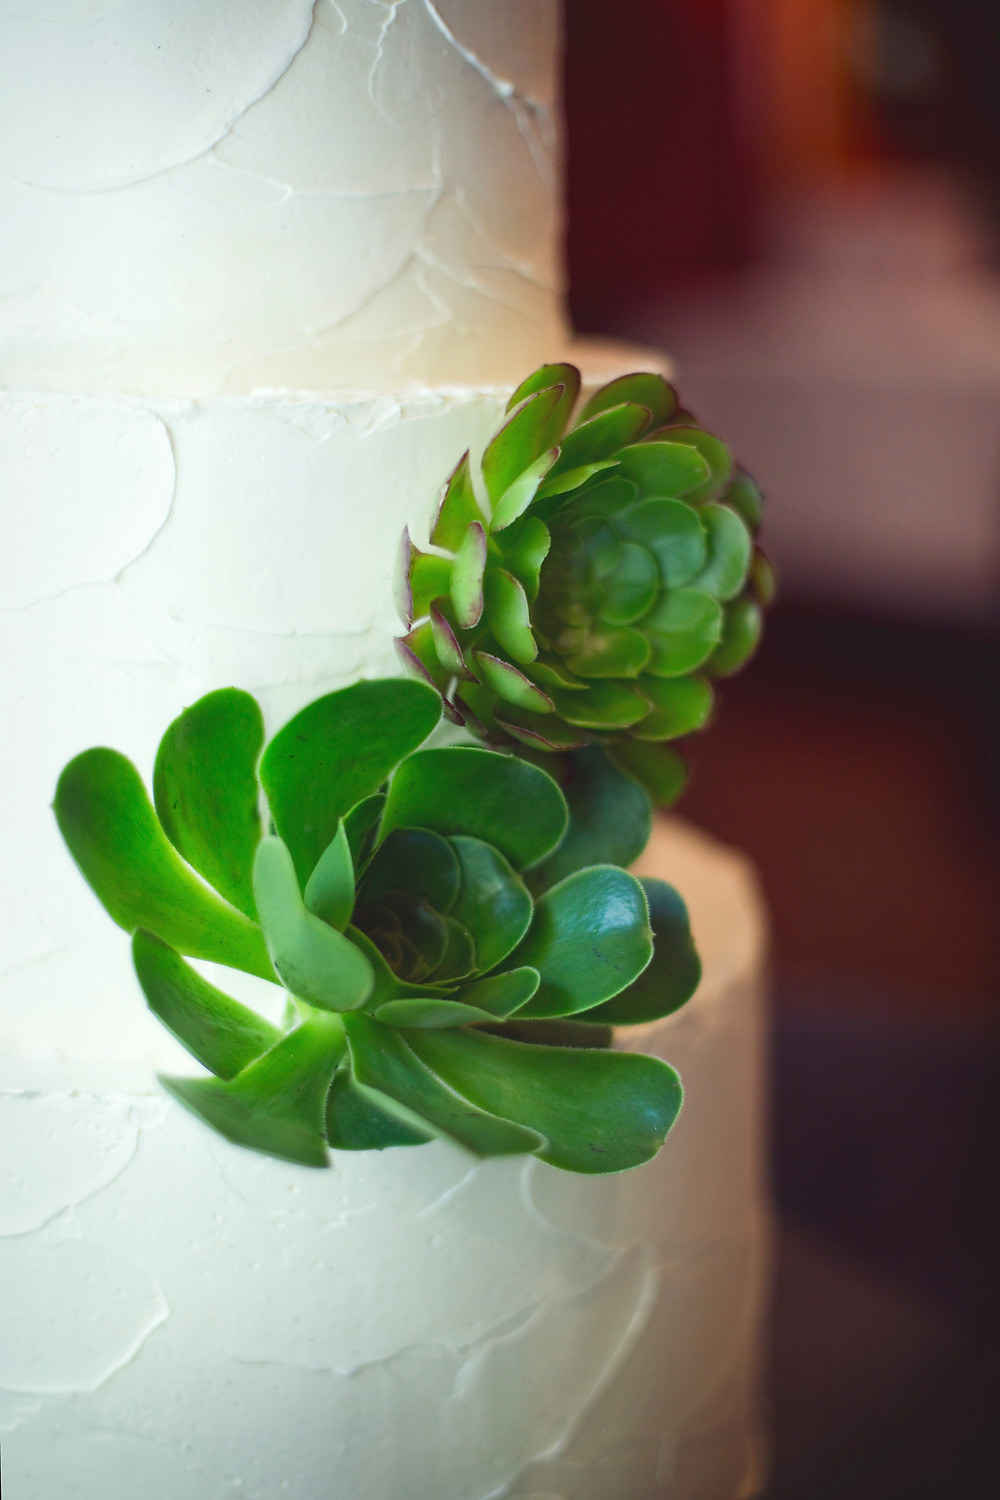 A close up shot of some green succulents on a white wedding cake at an Italian inspired wedding.